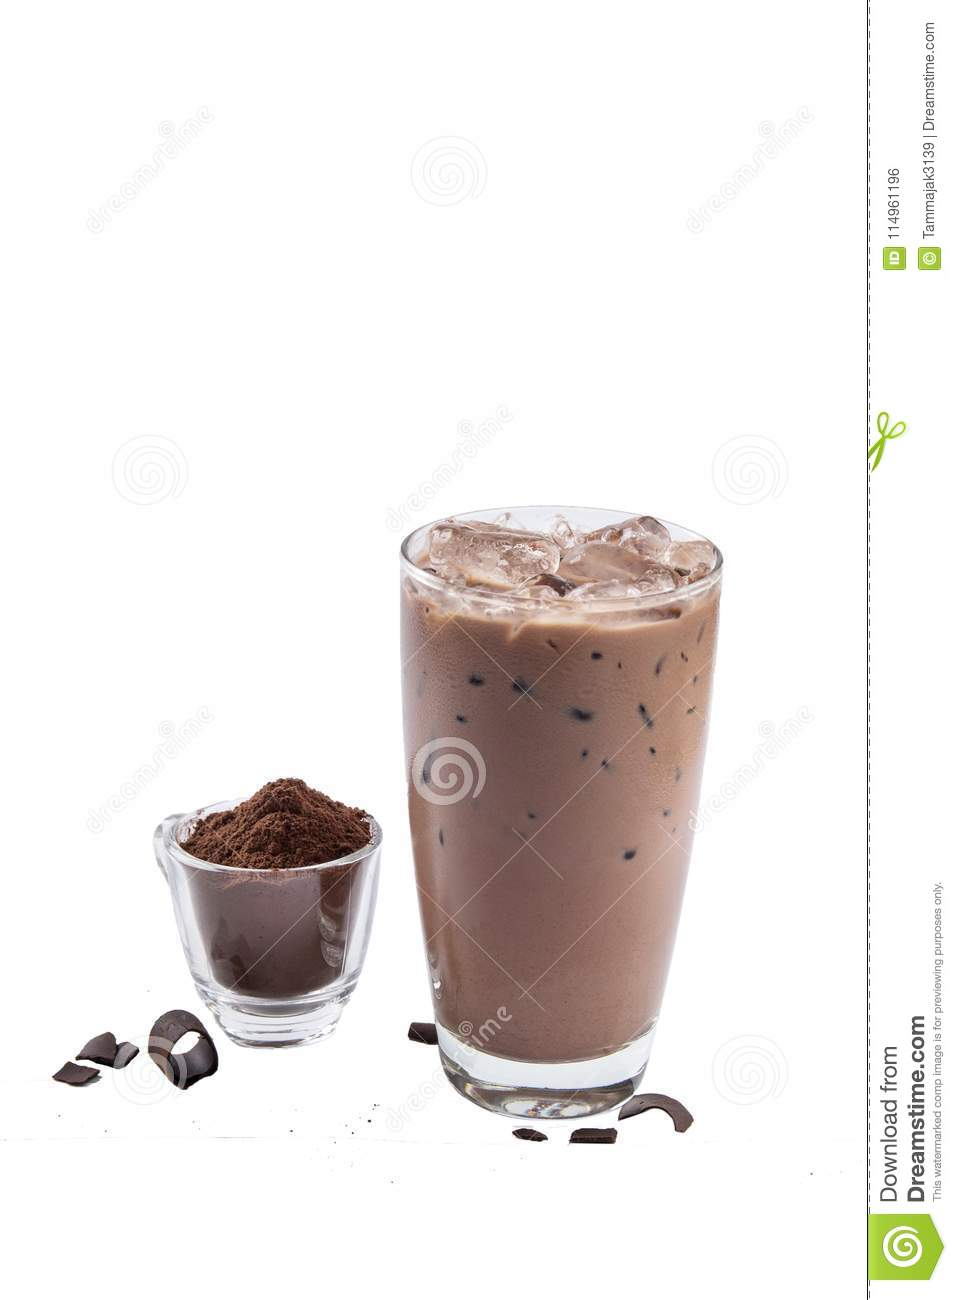 Isolate Iced Chocolate glass on white background with crushed co